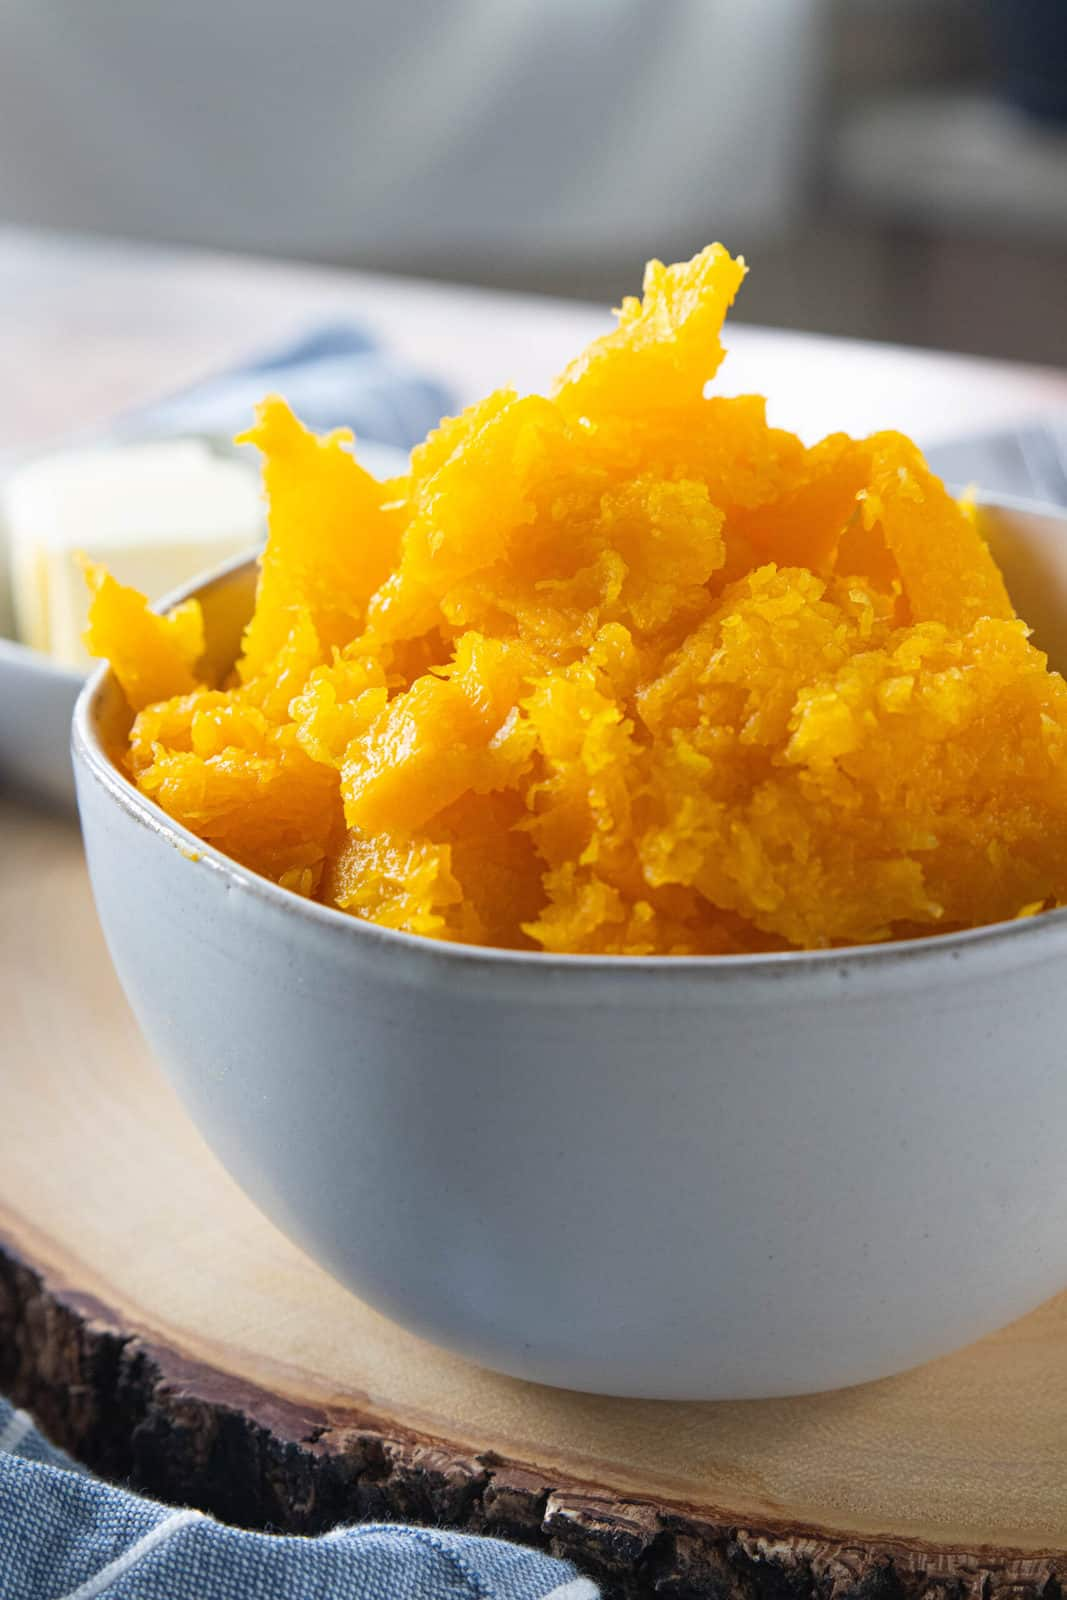 Steamed butternut squash in a white bowl.